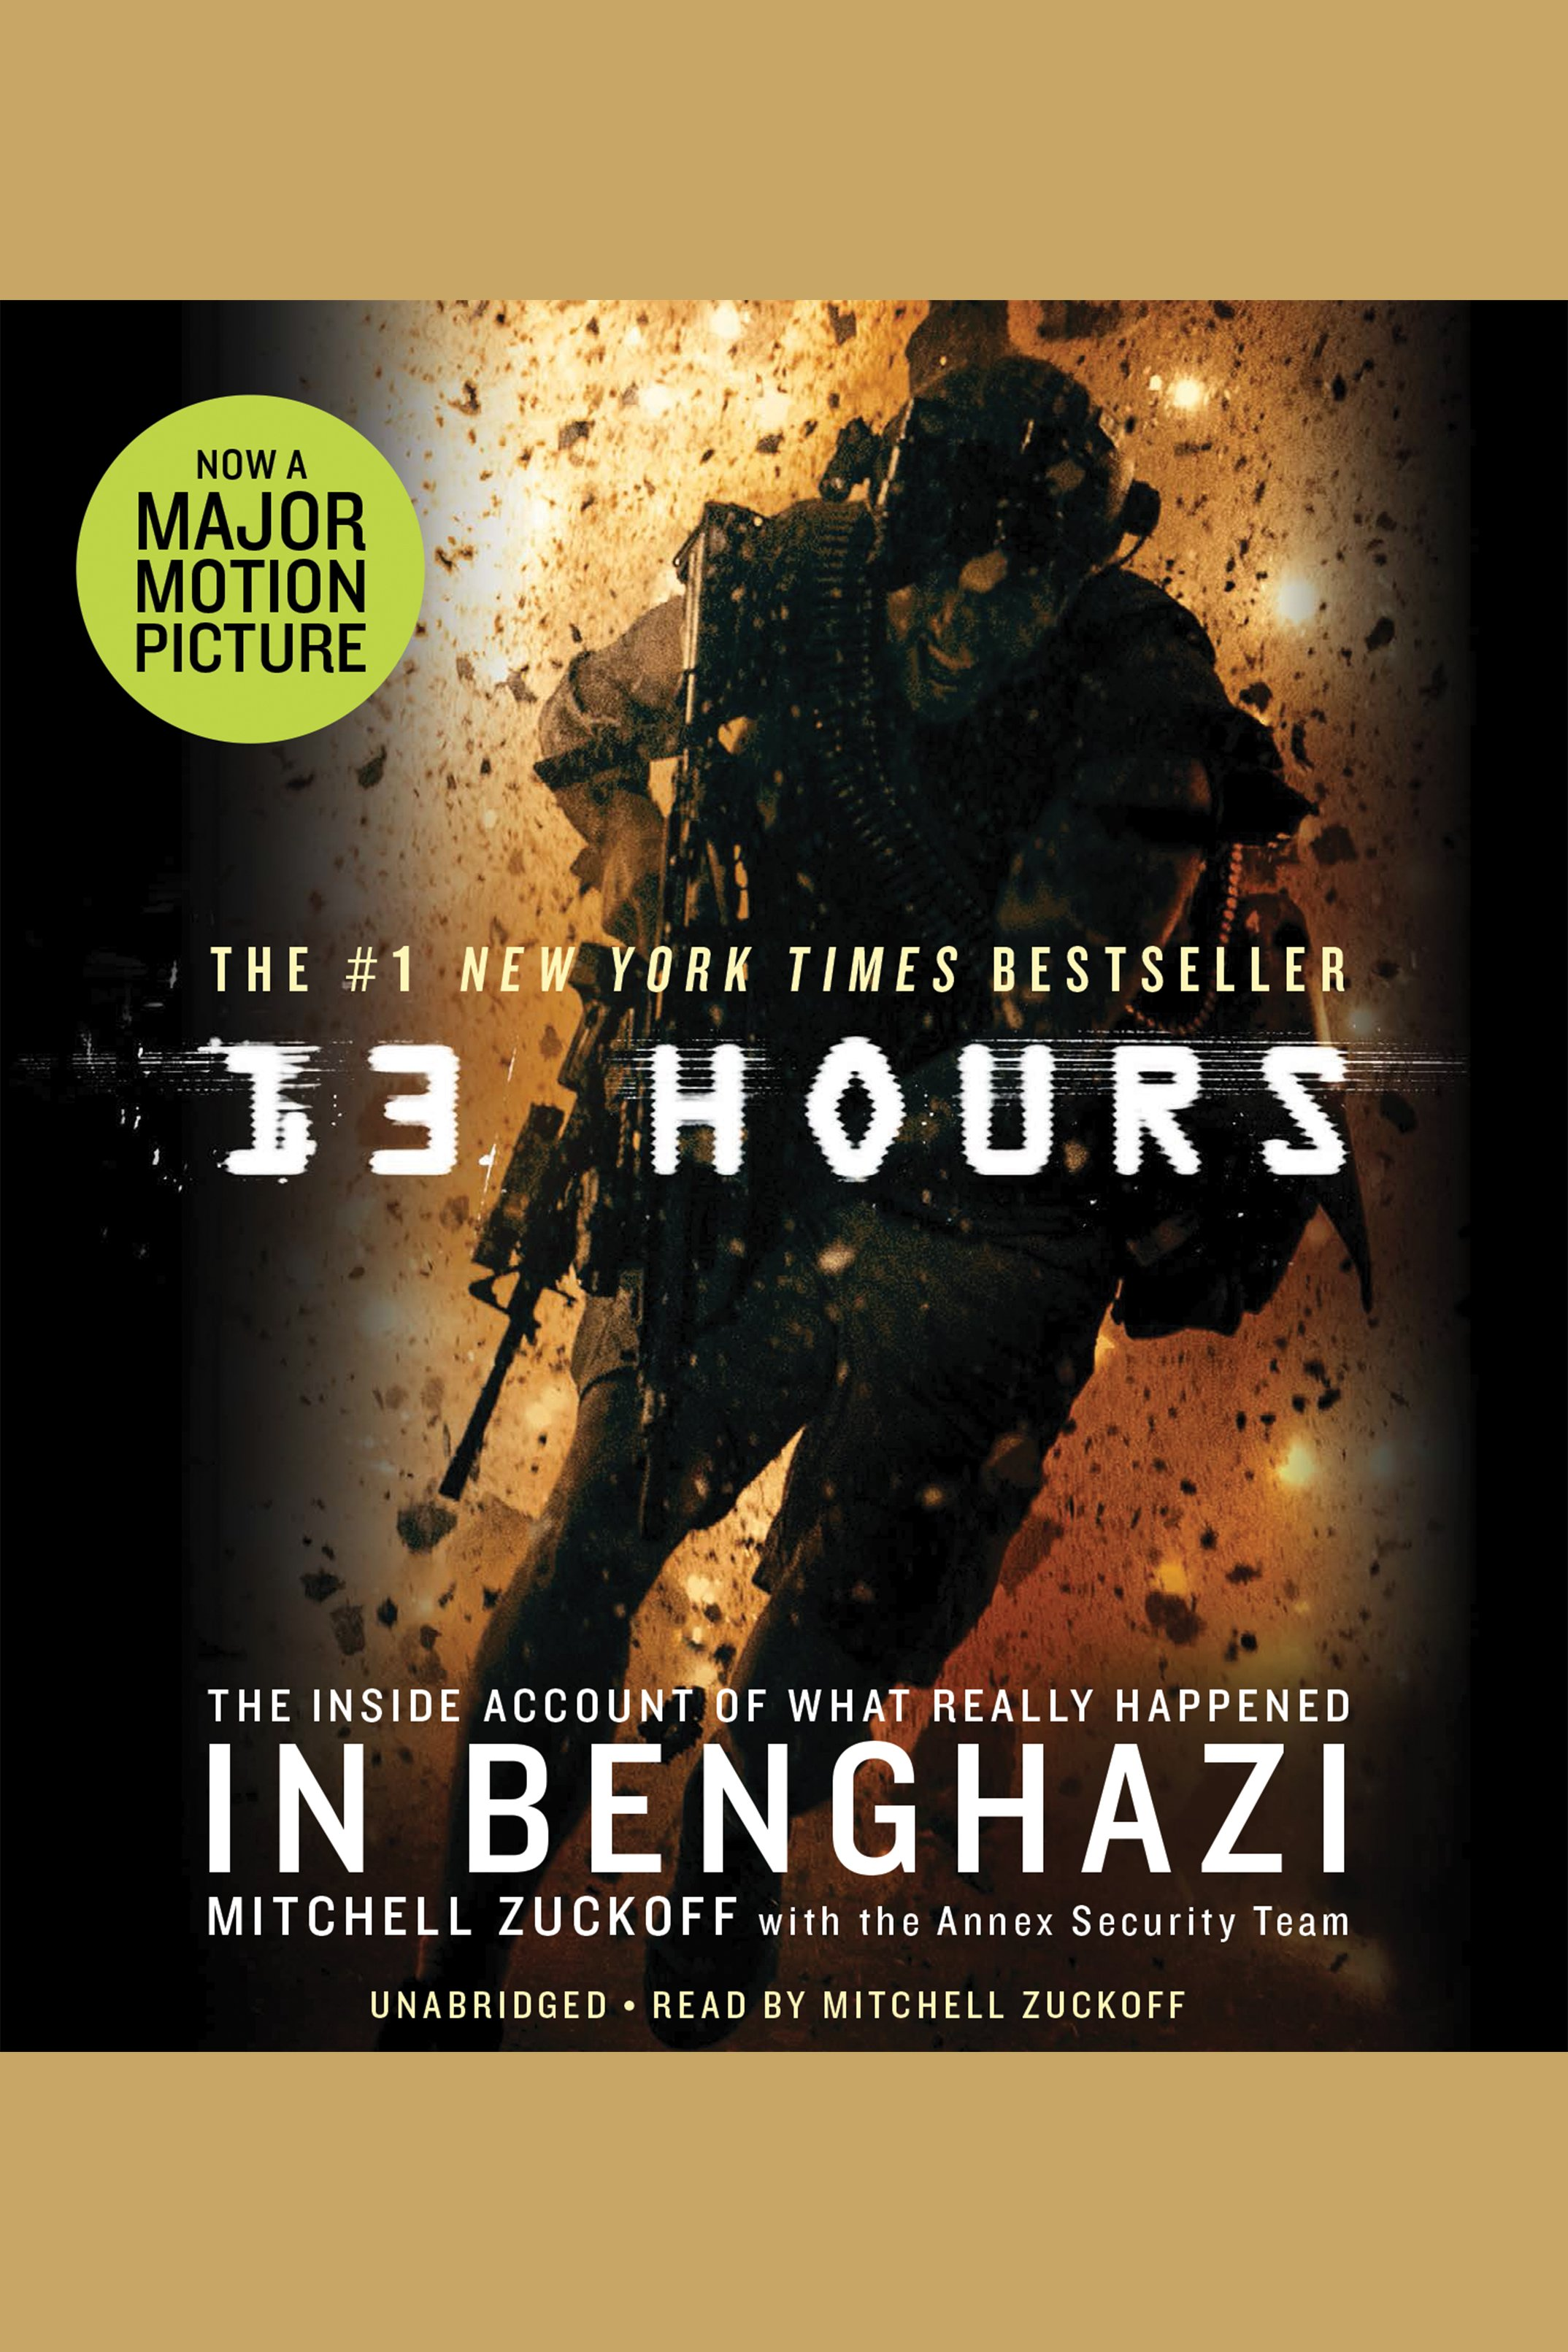 13 Hours A Firsthand Account of What Really Happened in Benghazi